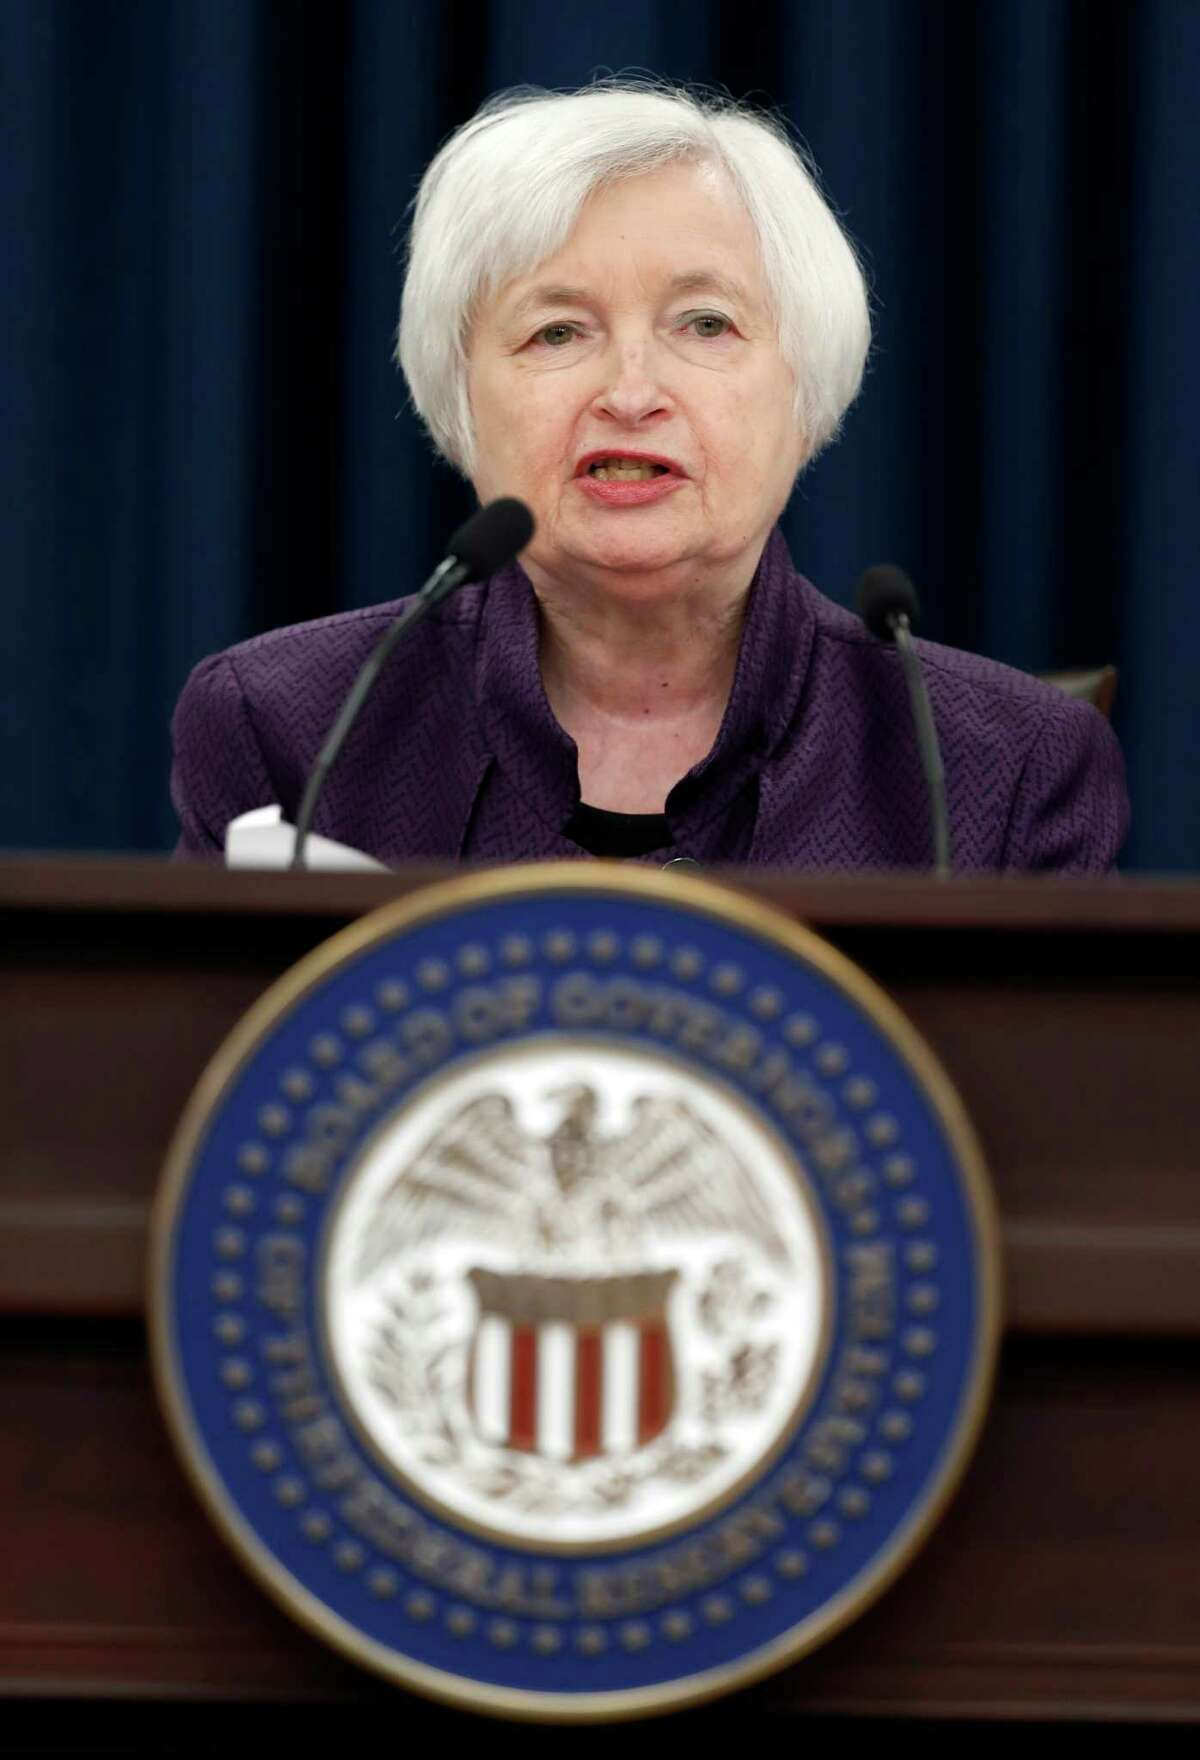 Federal Reserve Board Chair Janet Yellen speaks during a news conference on the Federal Reserve's monetary policy, Wednesday, Sept. 21, 2016, in Washington. (AP Photo/Alex Brandon)